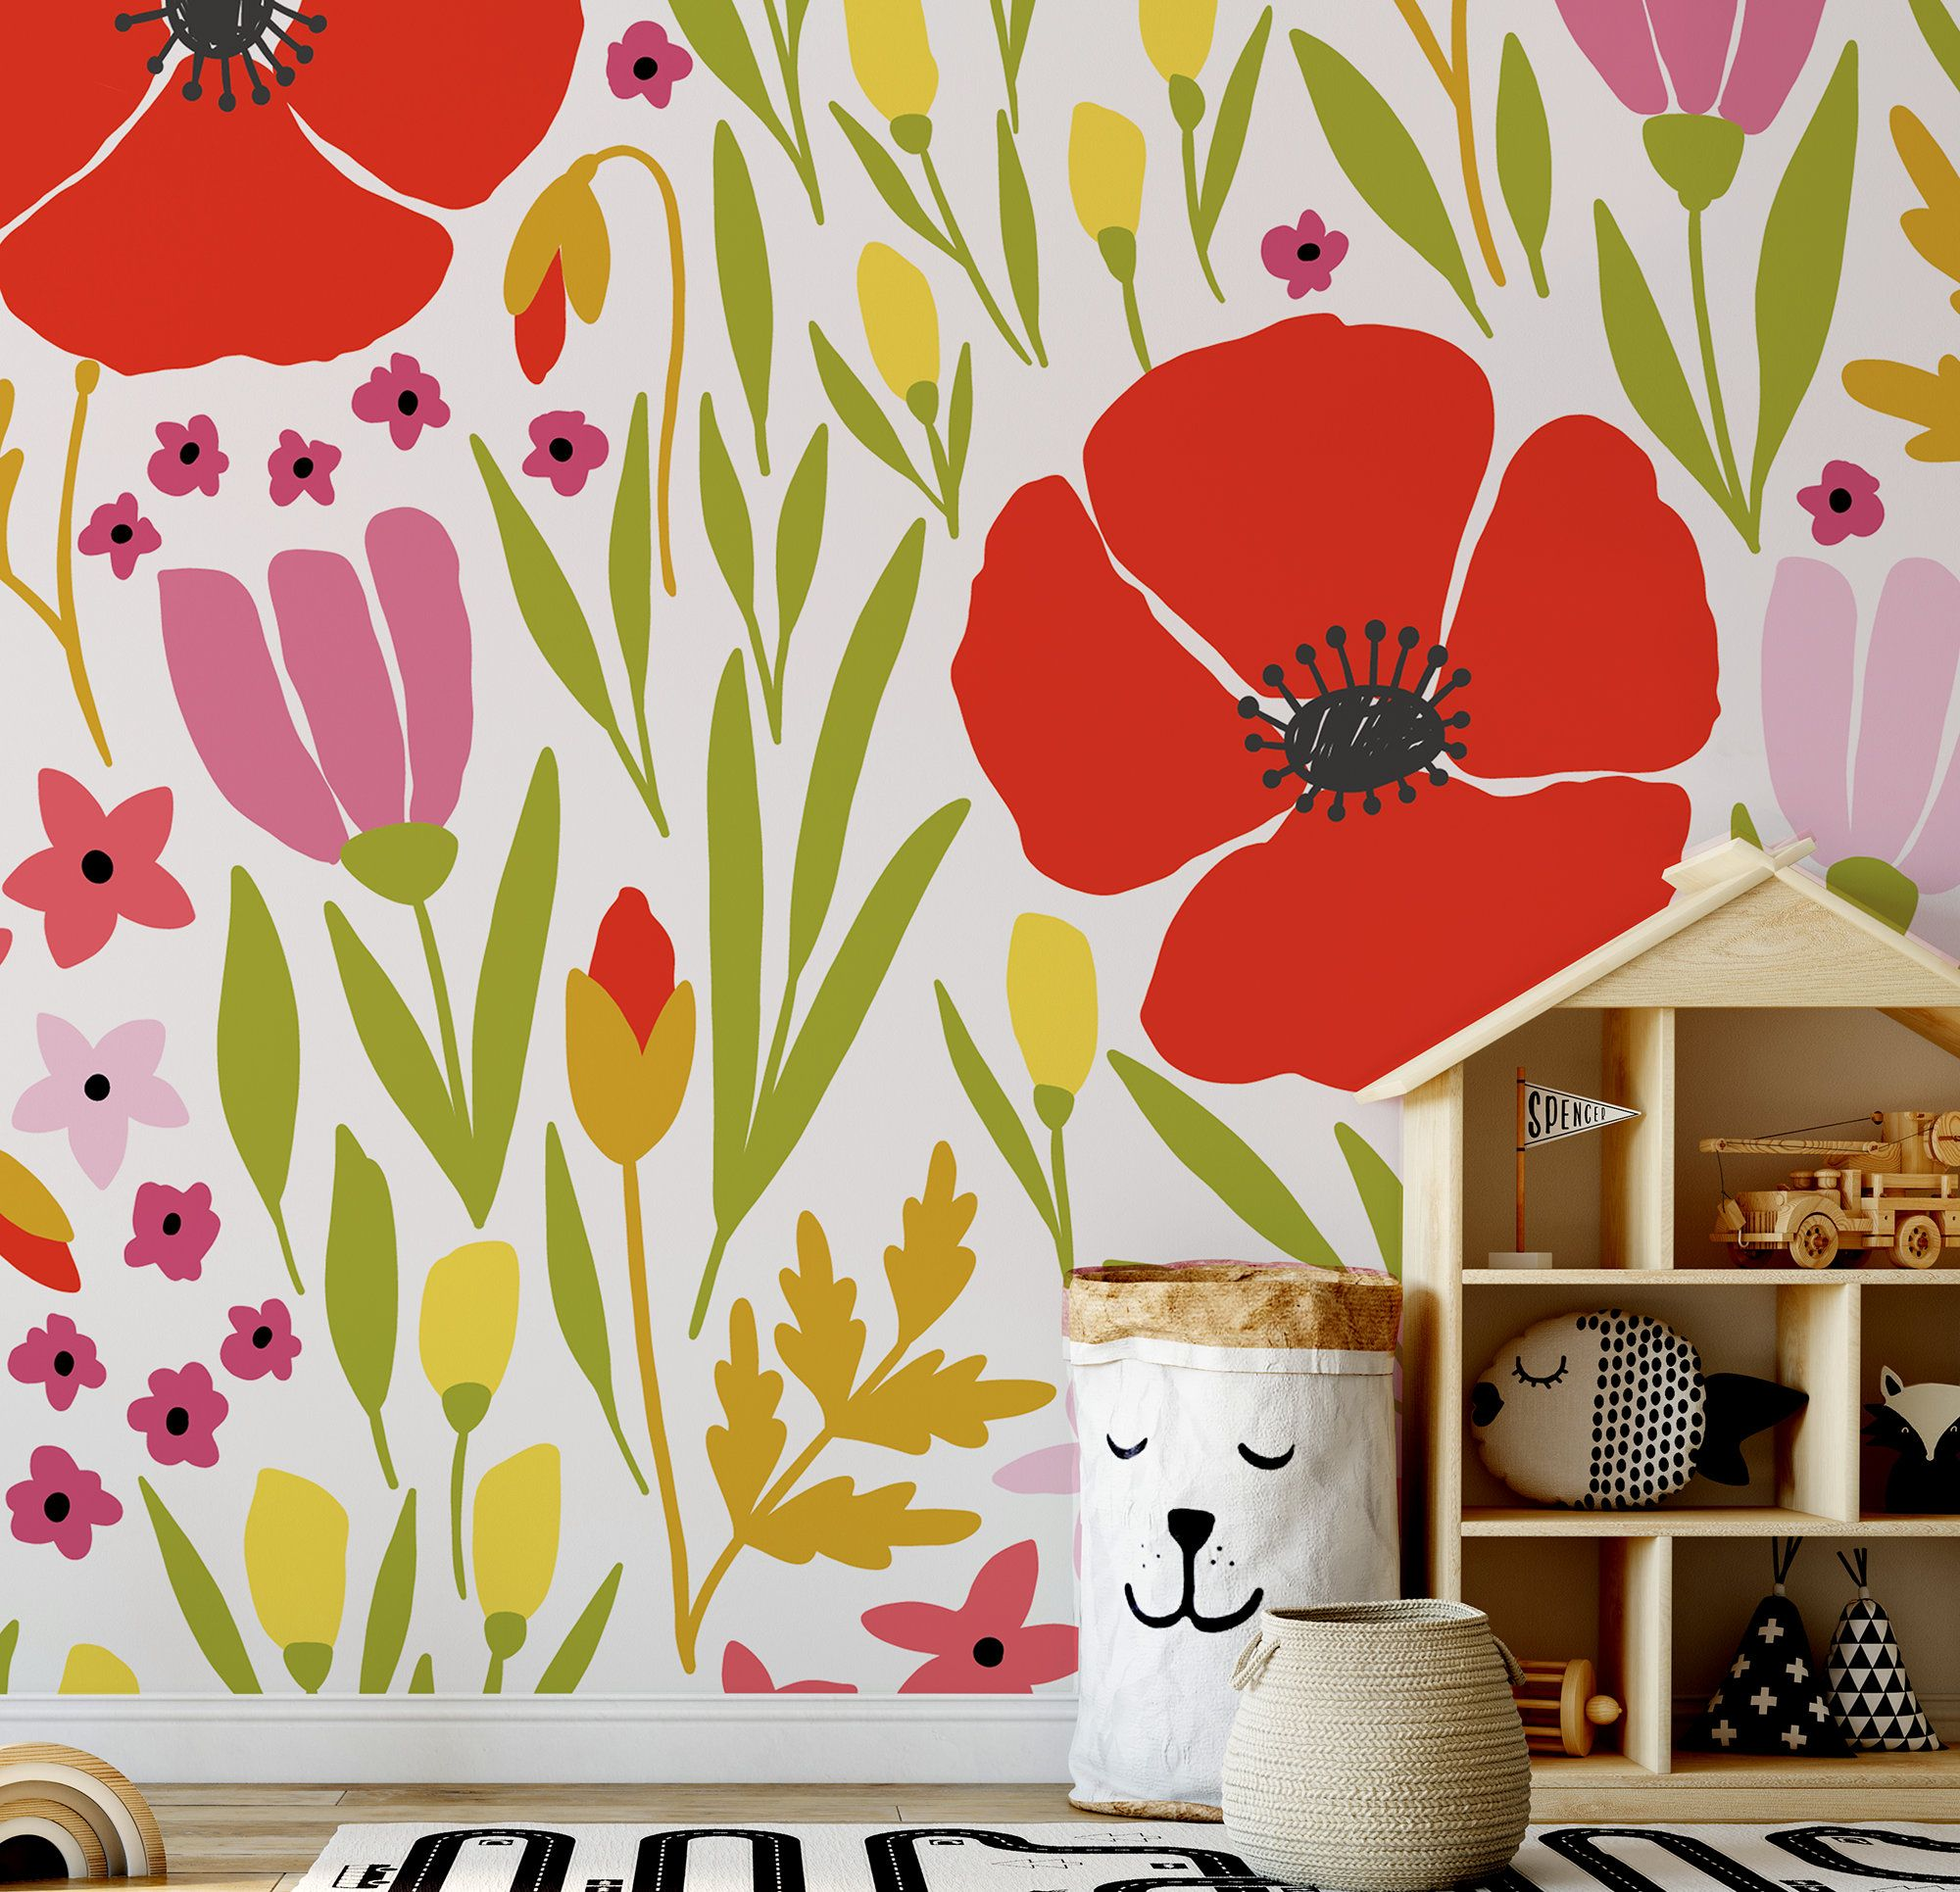 Floral Wallpaper With Red Poppy Flower For Kids Self Etsy Floral Wallpaper Red Poppies Poppy Flower